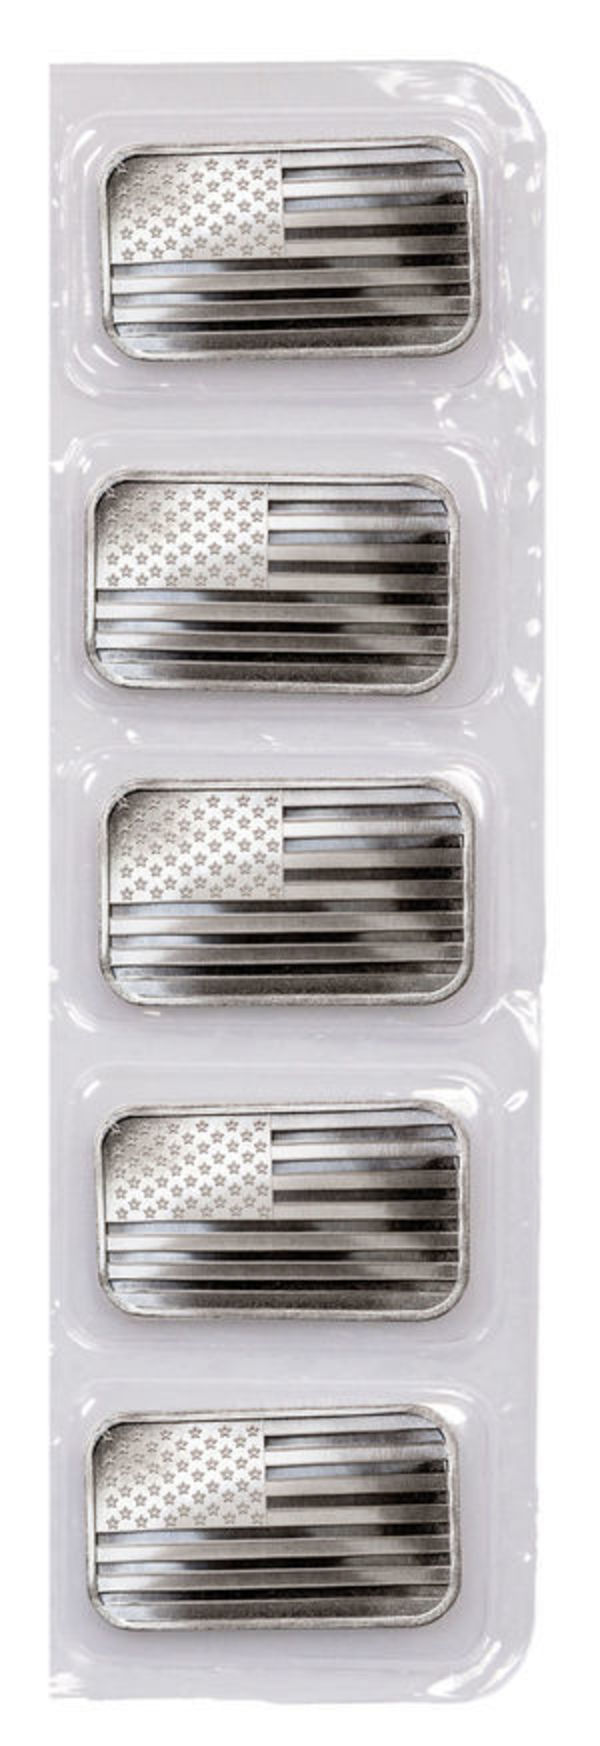 (5) 1 oz American Flag Bars